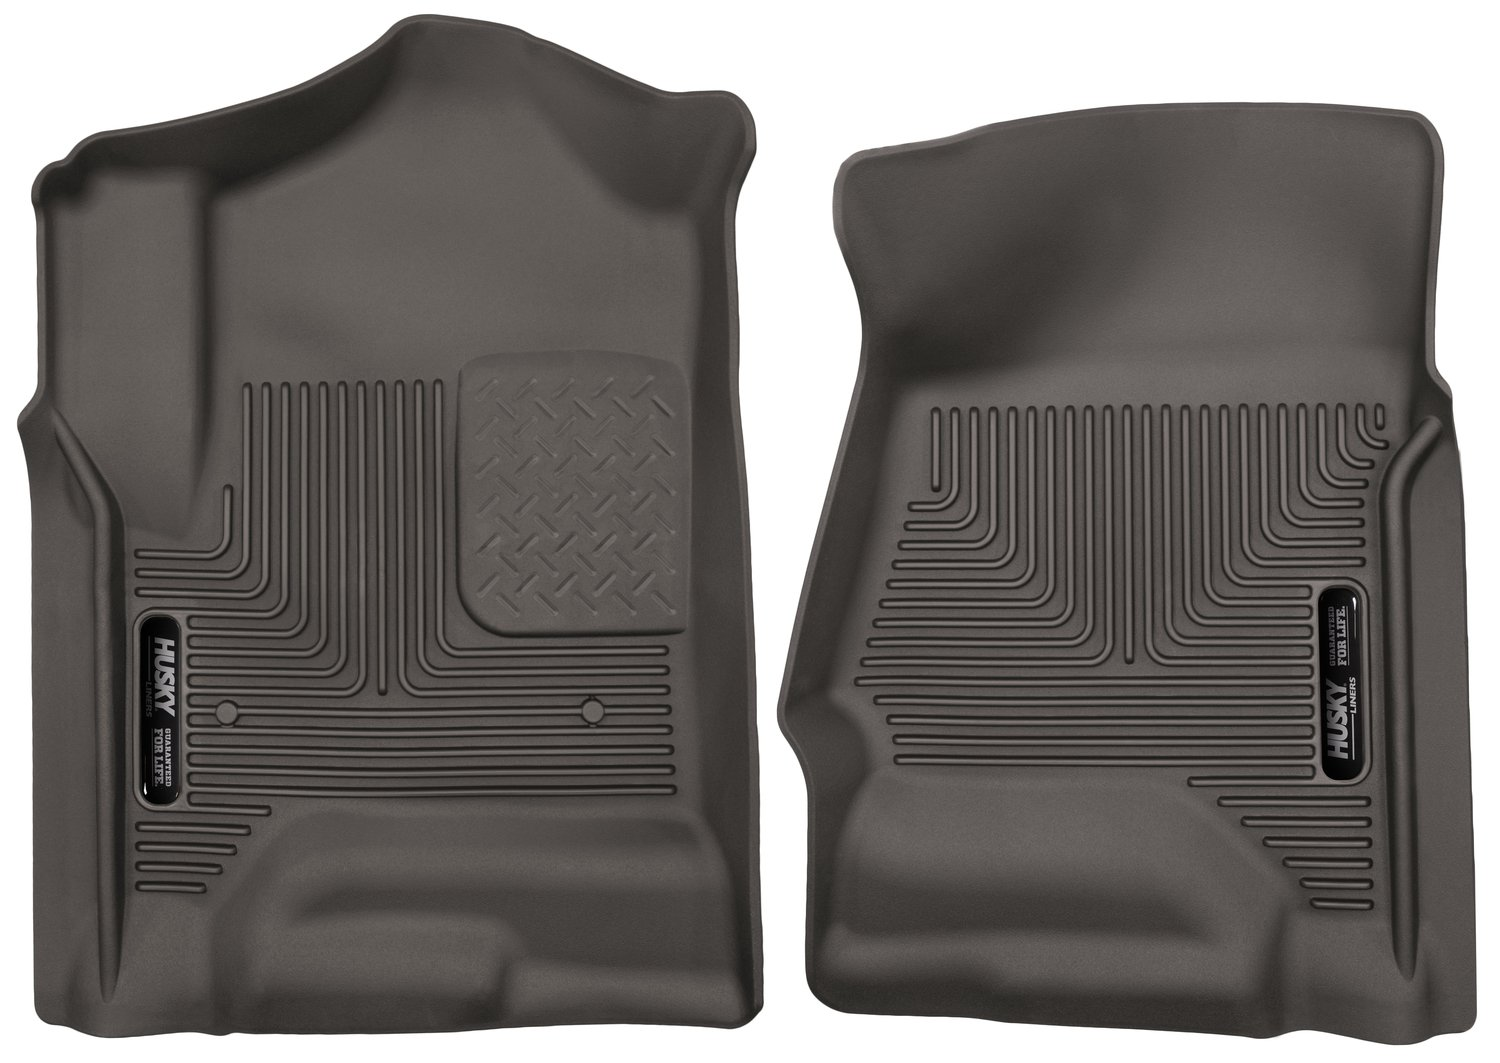 Husky Liners 53110 Cocoa Front Floor Liners Fits 14-18, 2019 Legacy/Sierra 1500, 15-19 Chevrolet Silverado 2500/3500, 2 Pack